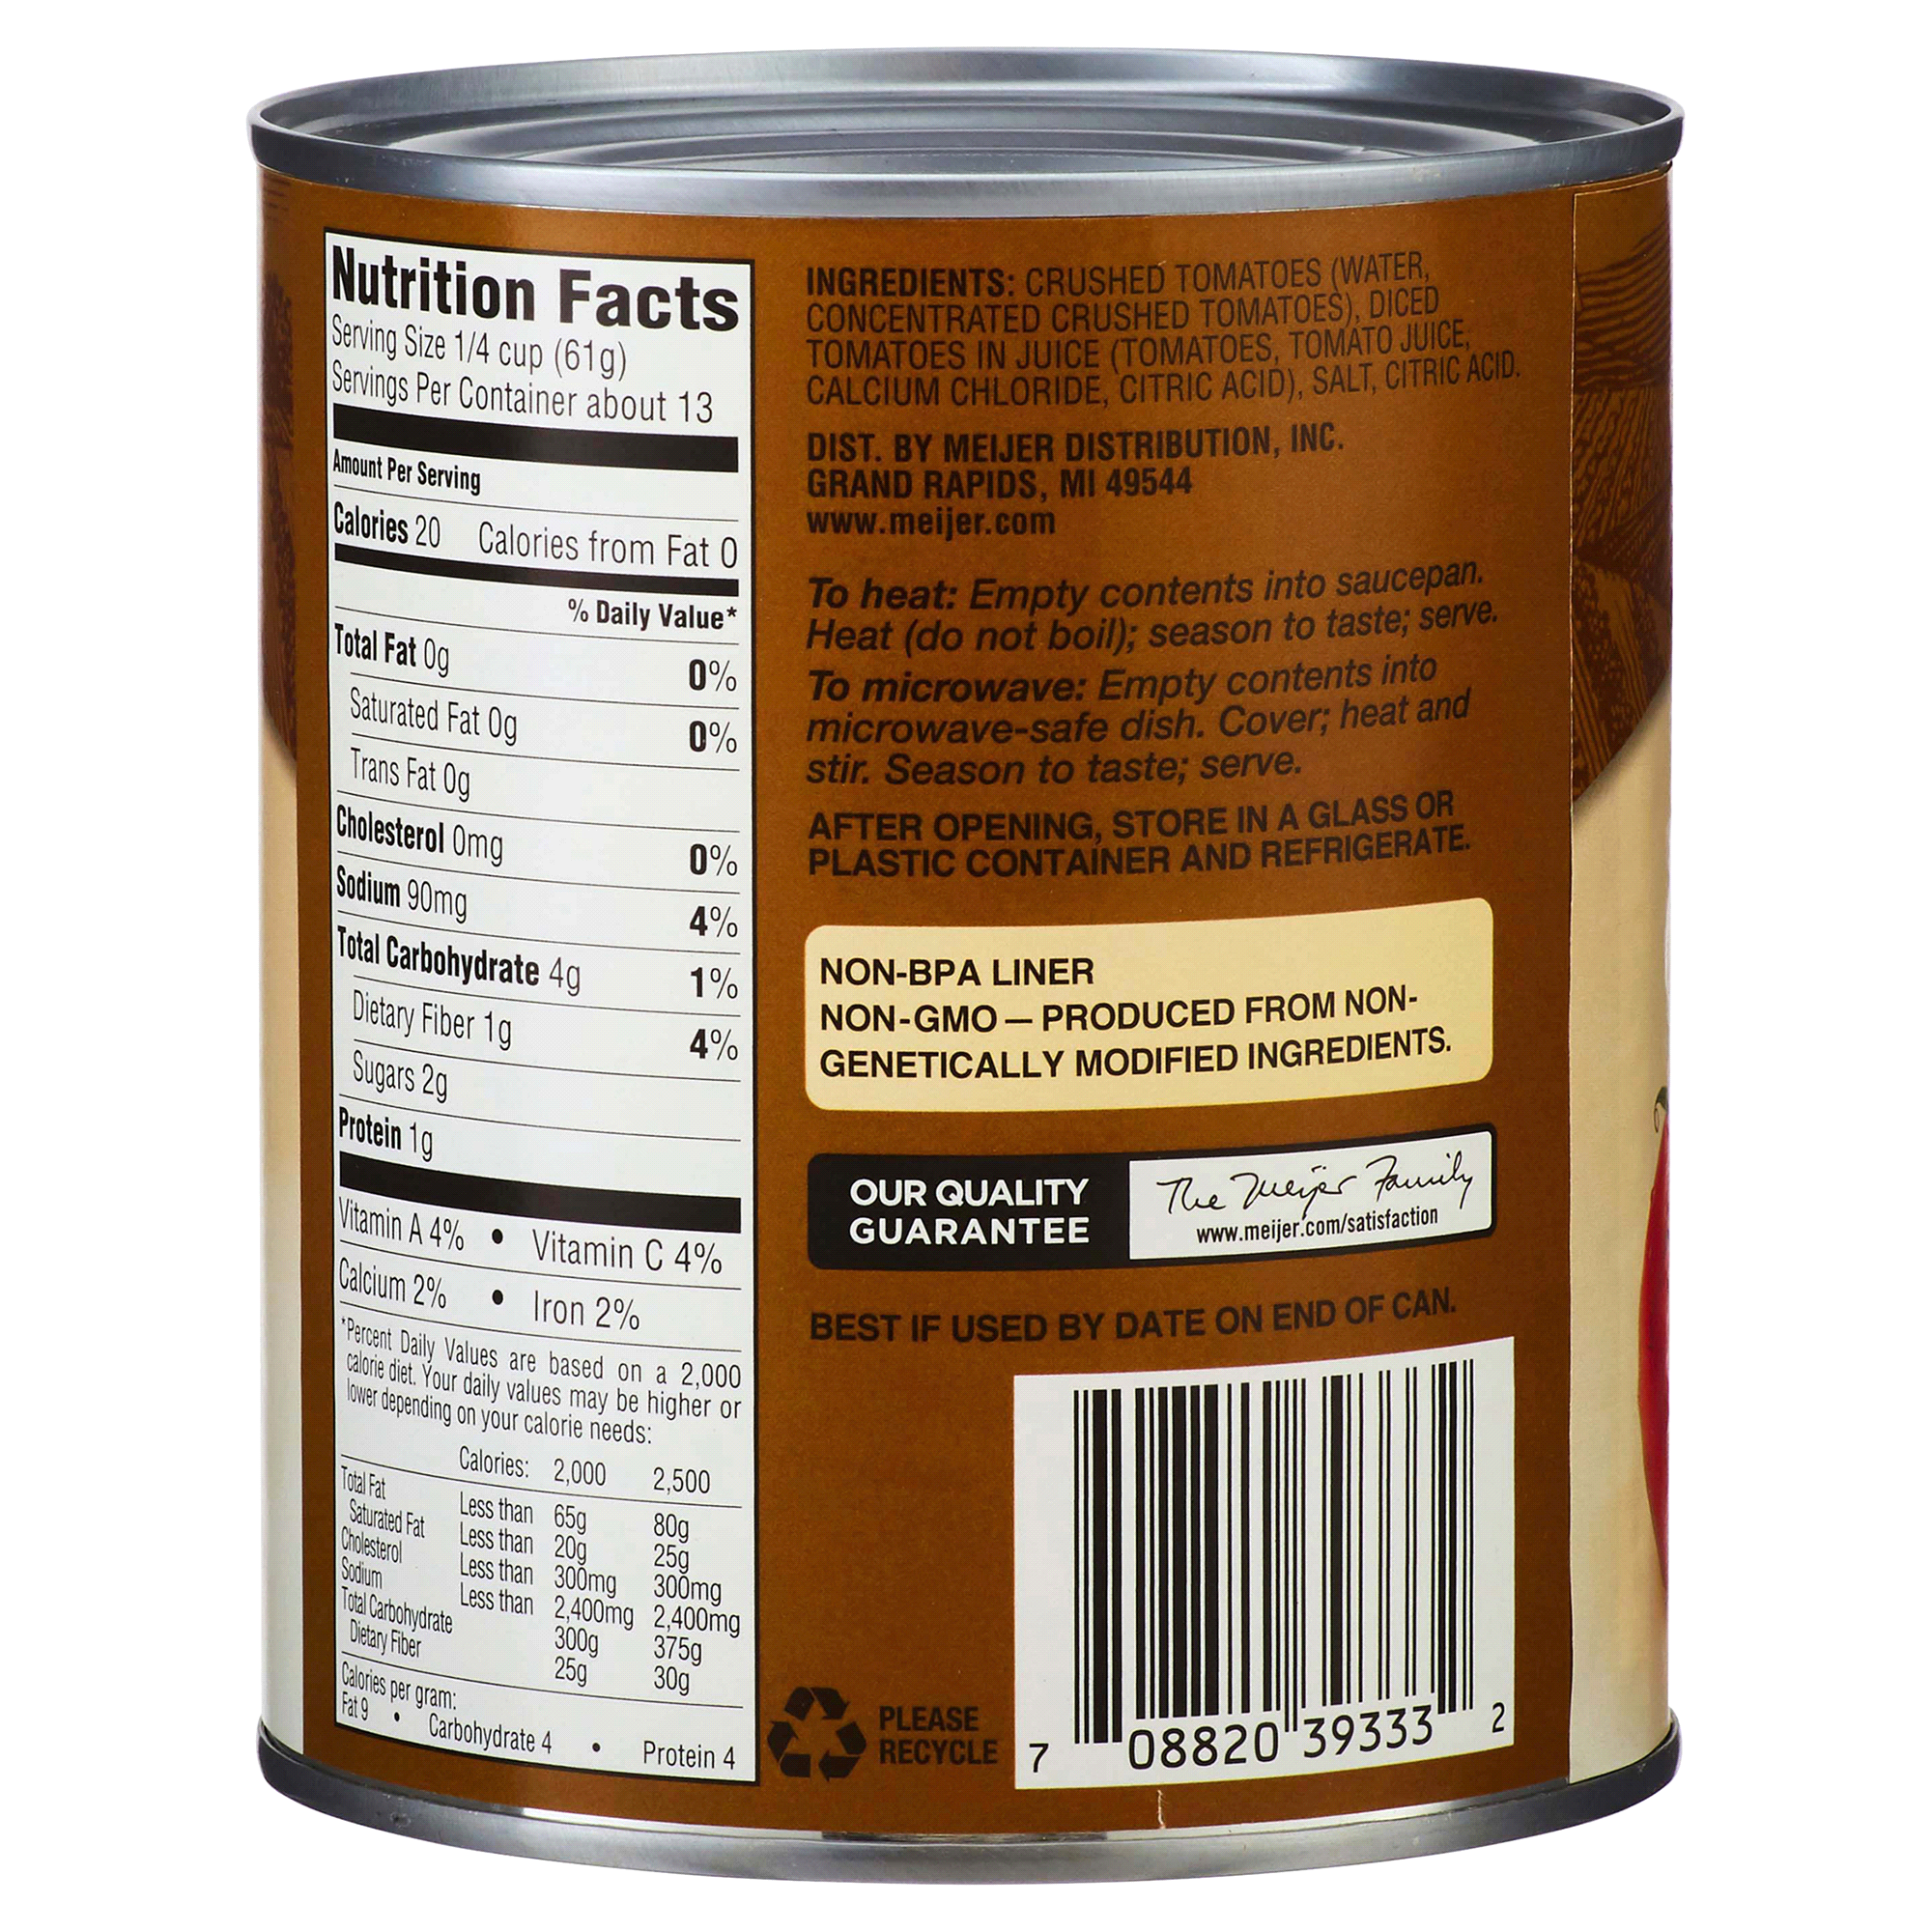 Meijer Crushed Tomato in Puree Low Sodium 28 oz | Meijer.com